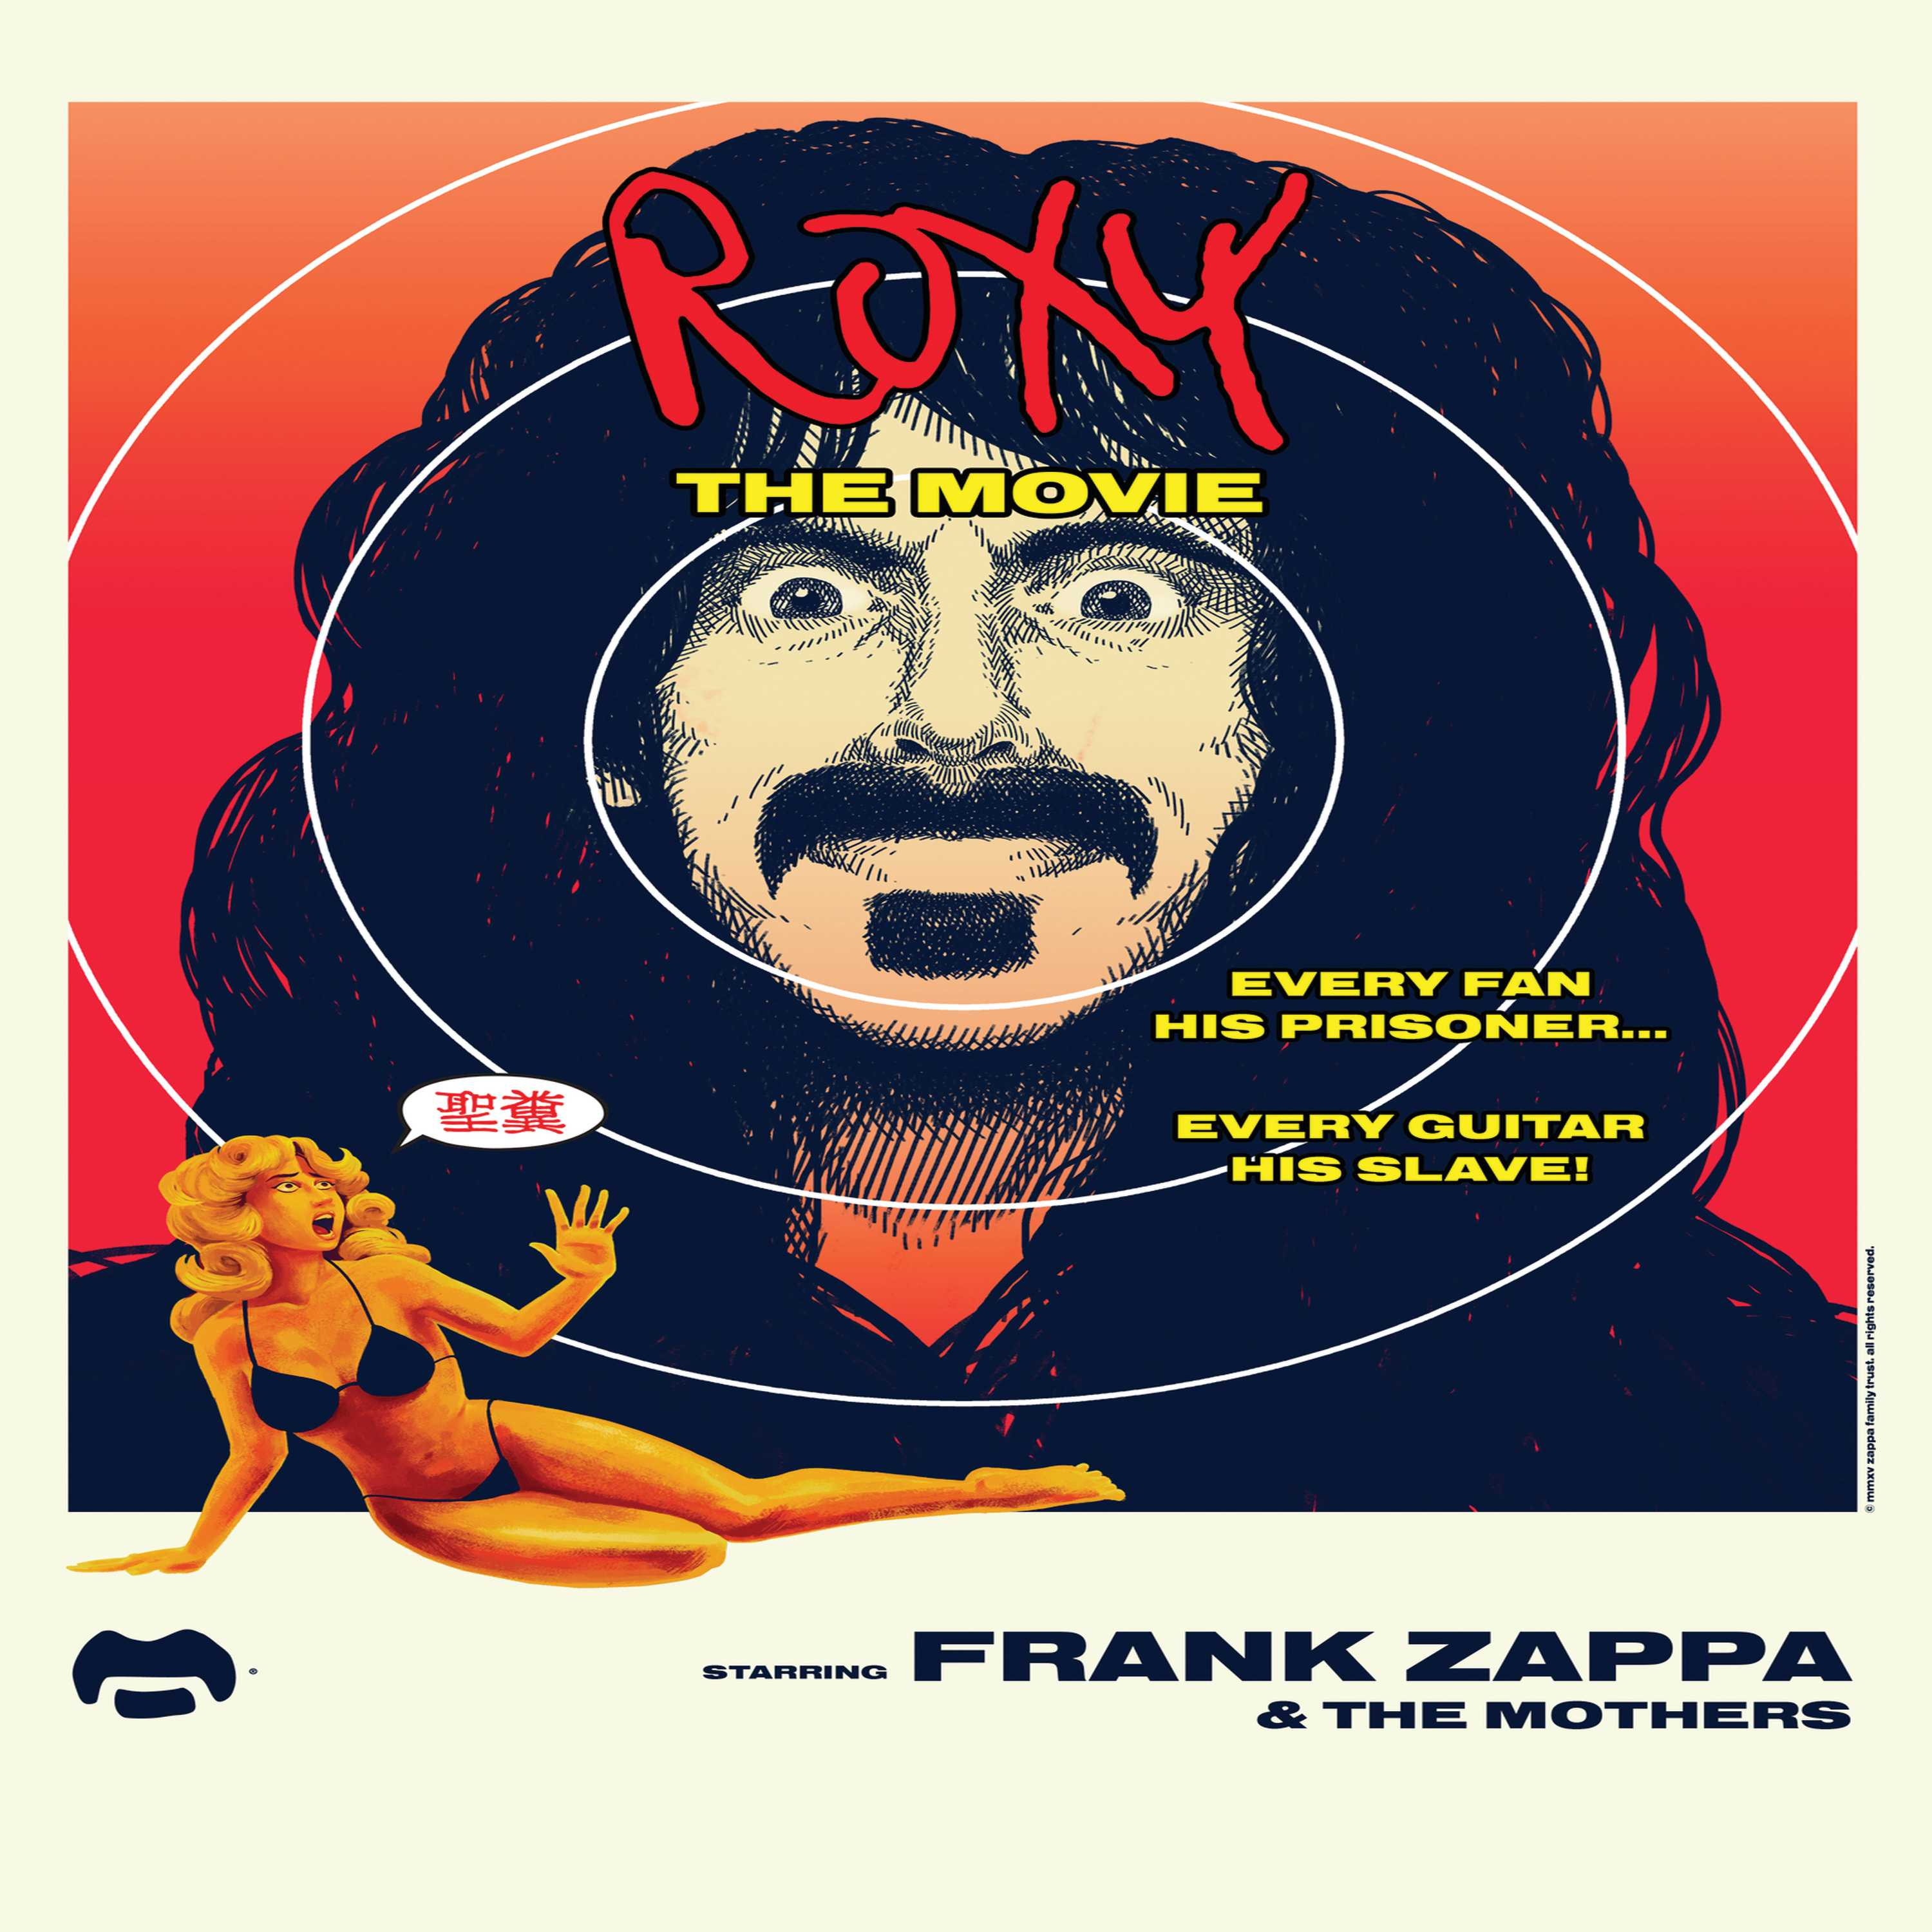 Frank Zappa and the Mothers of Invention: Roxy the Movie